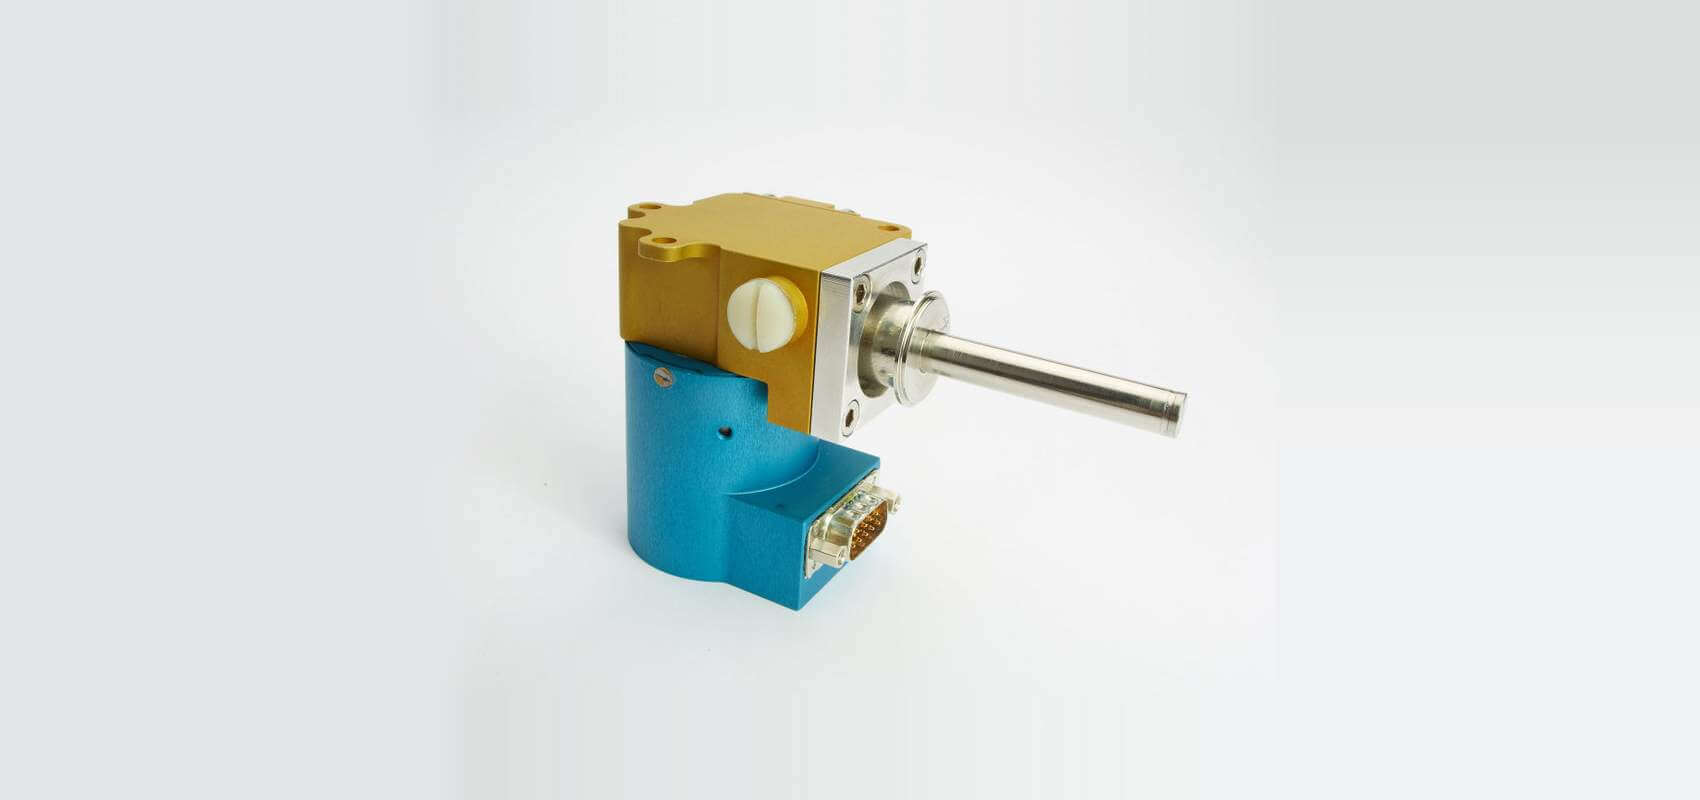 Stirling cryocooler rotary drive